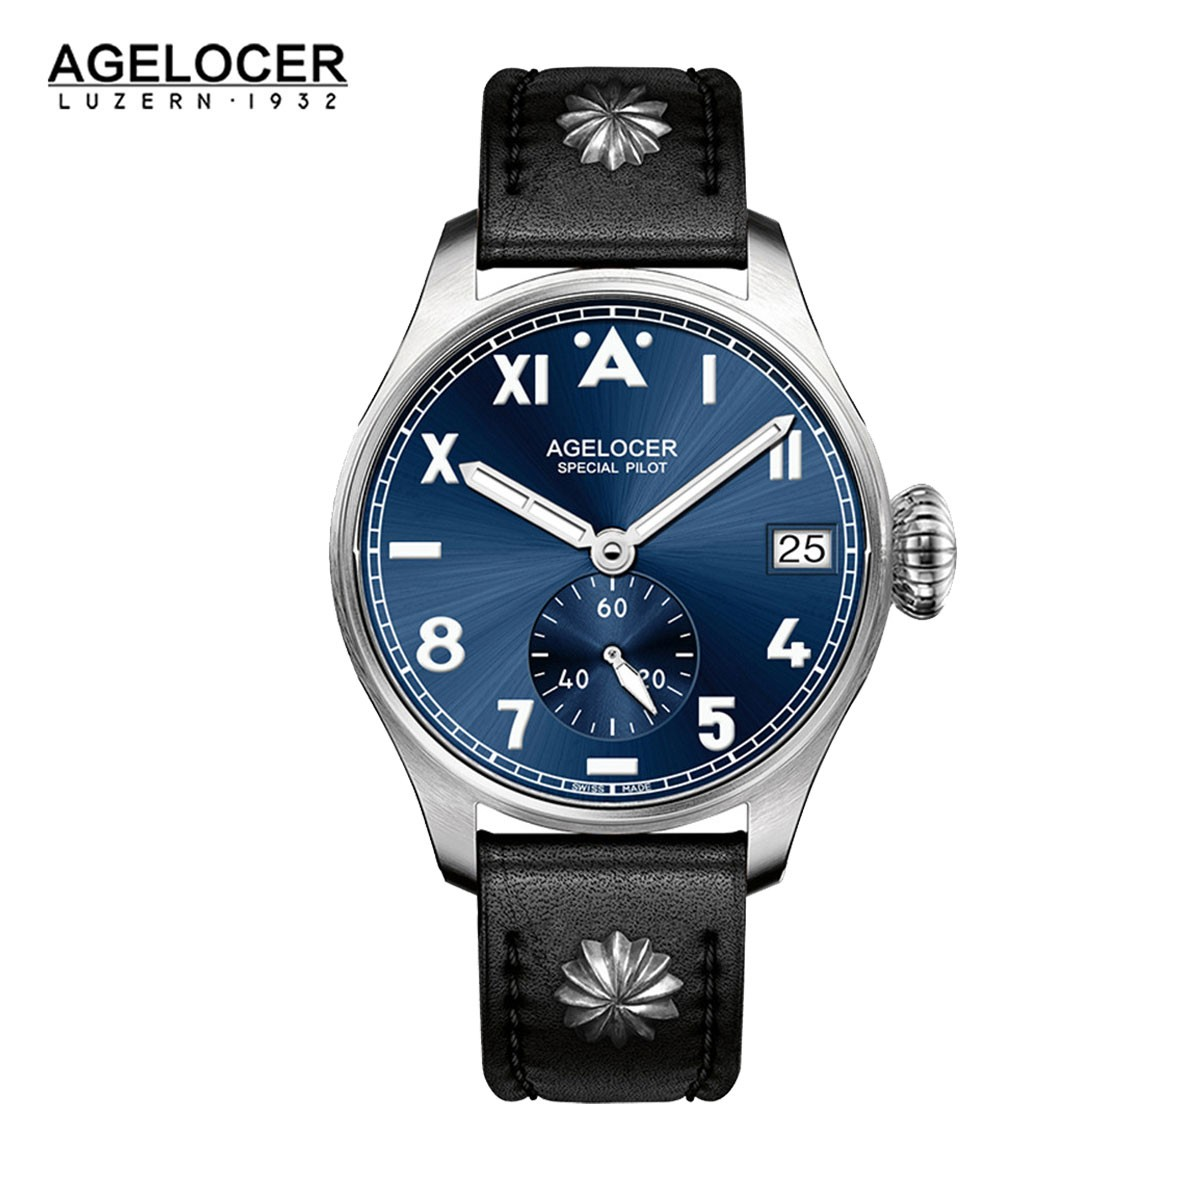 Agelocer North Carolina 42mm Steel 3102A1